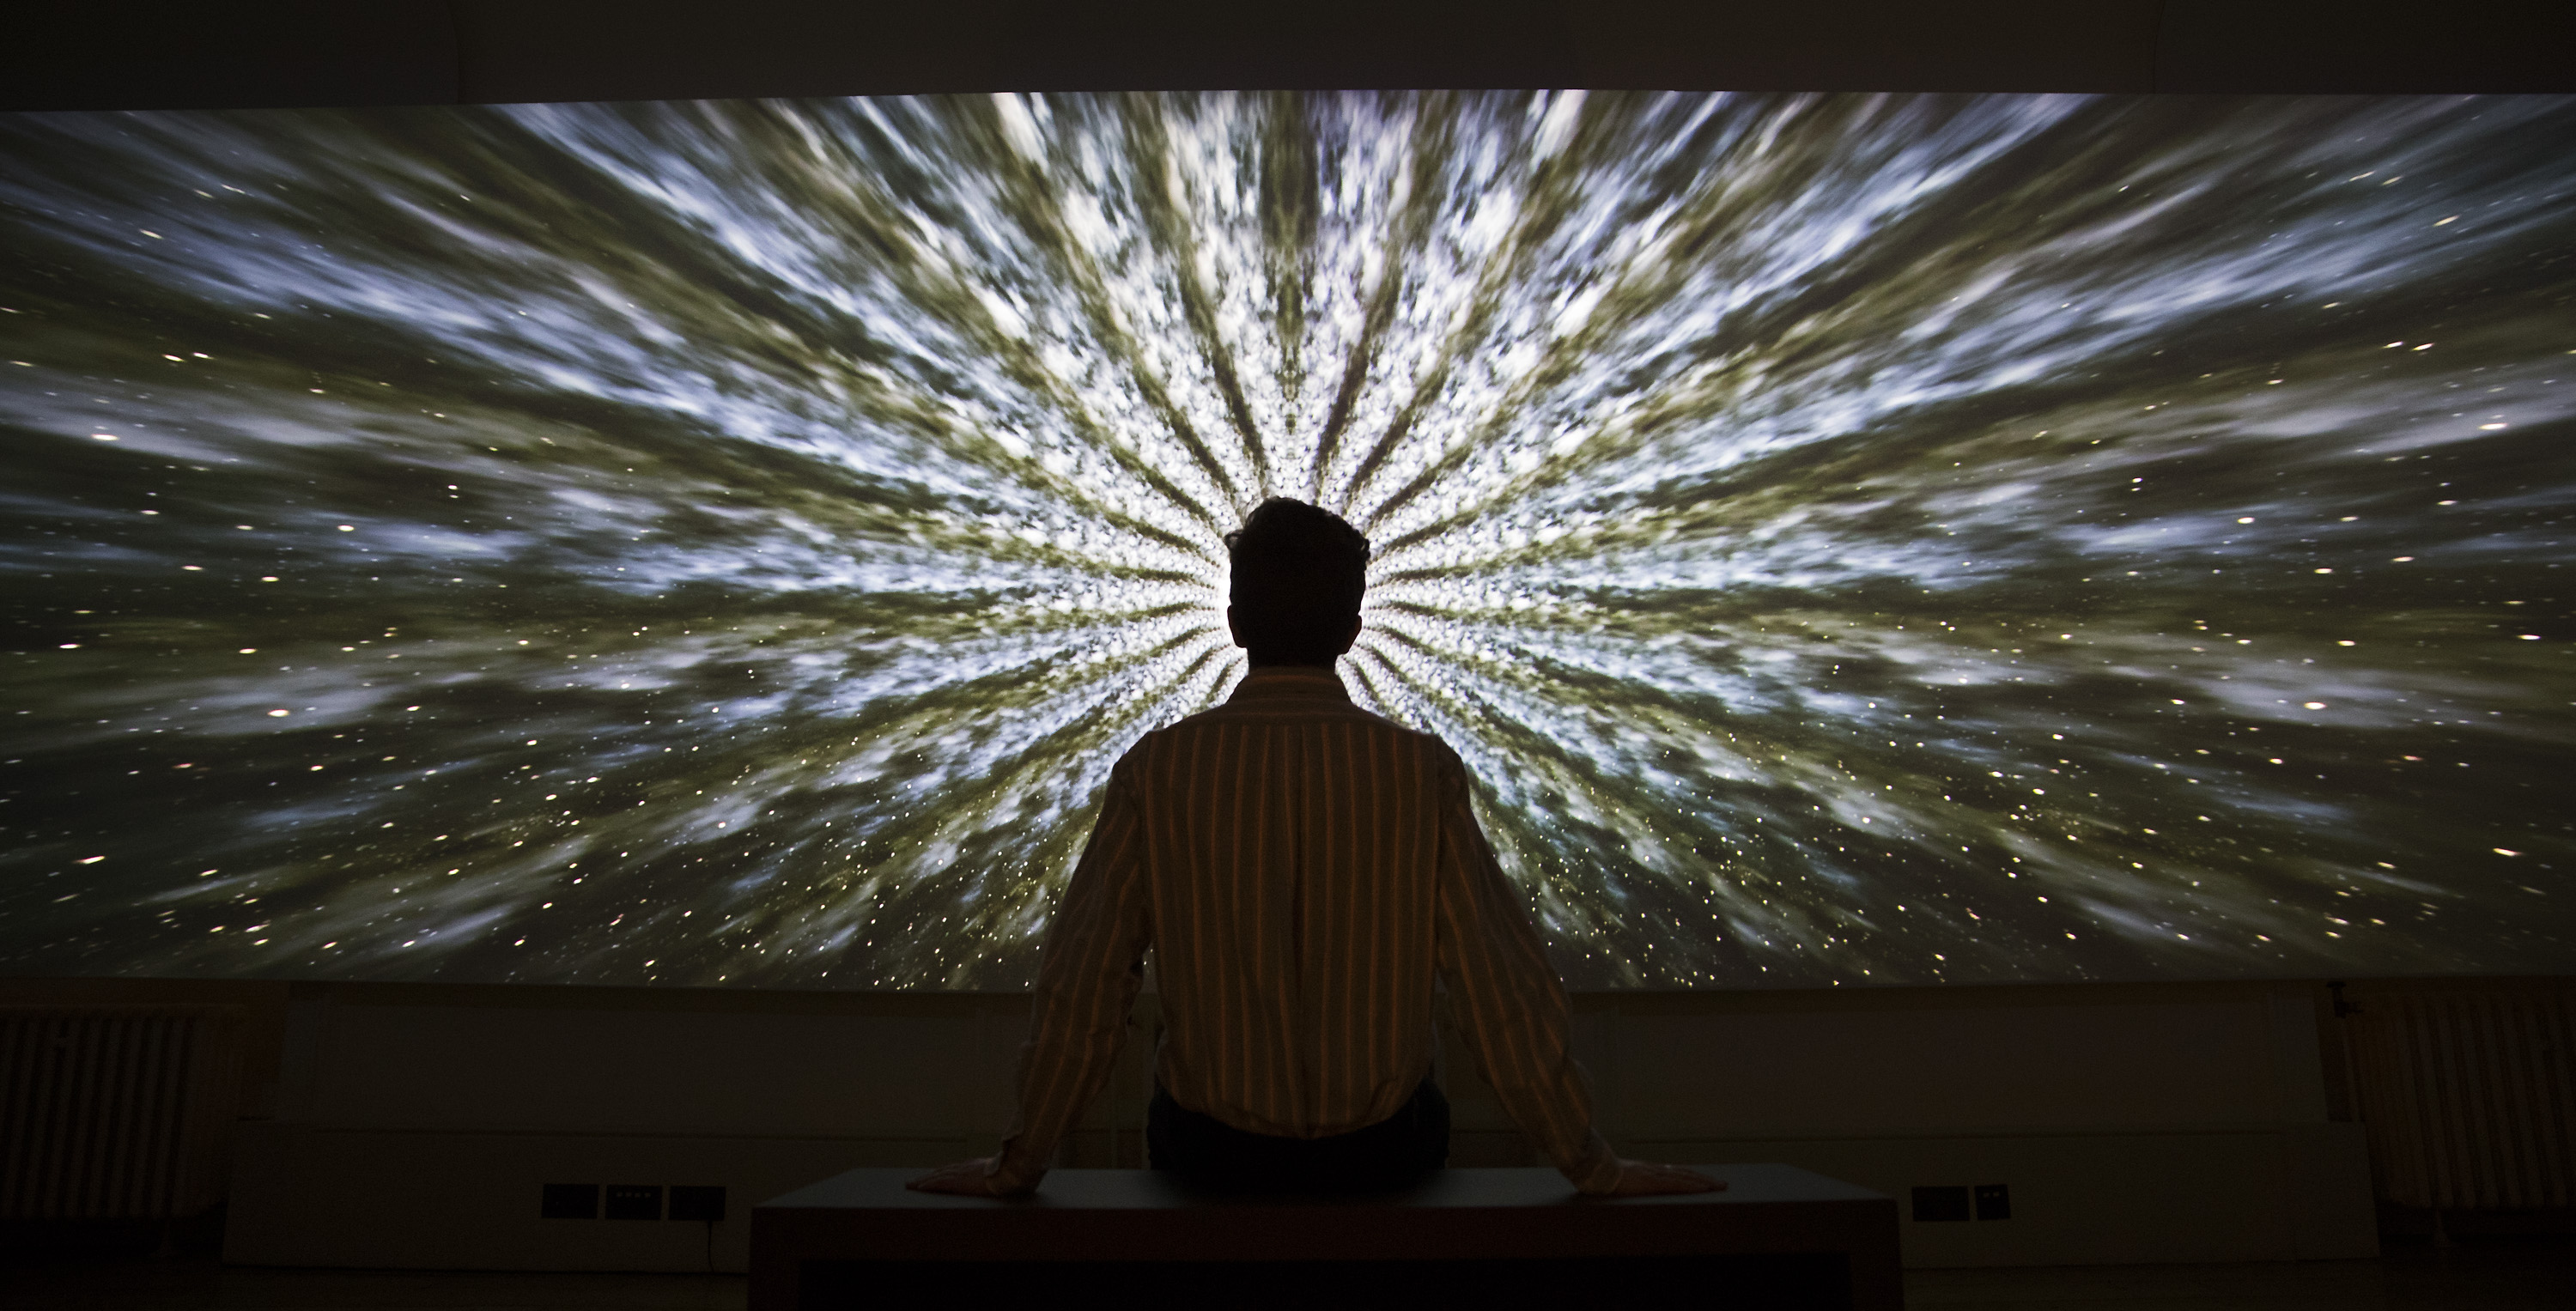 A visitor views Beyond the Infinite, 2016 by artist Doug Foster at the exhibition Daydreaming with Stanley Kubrick in partnership with Canon at Somerset House in London. Photo by Peter Macdiarmid| ©London News Pictures/LPN